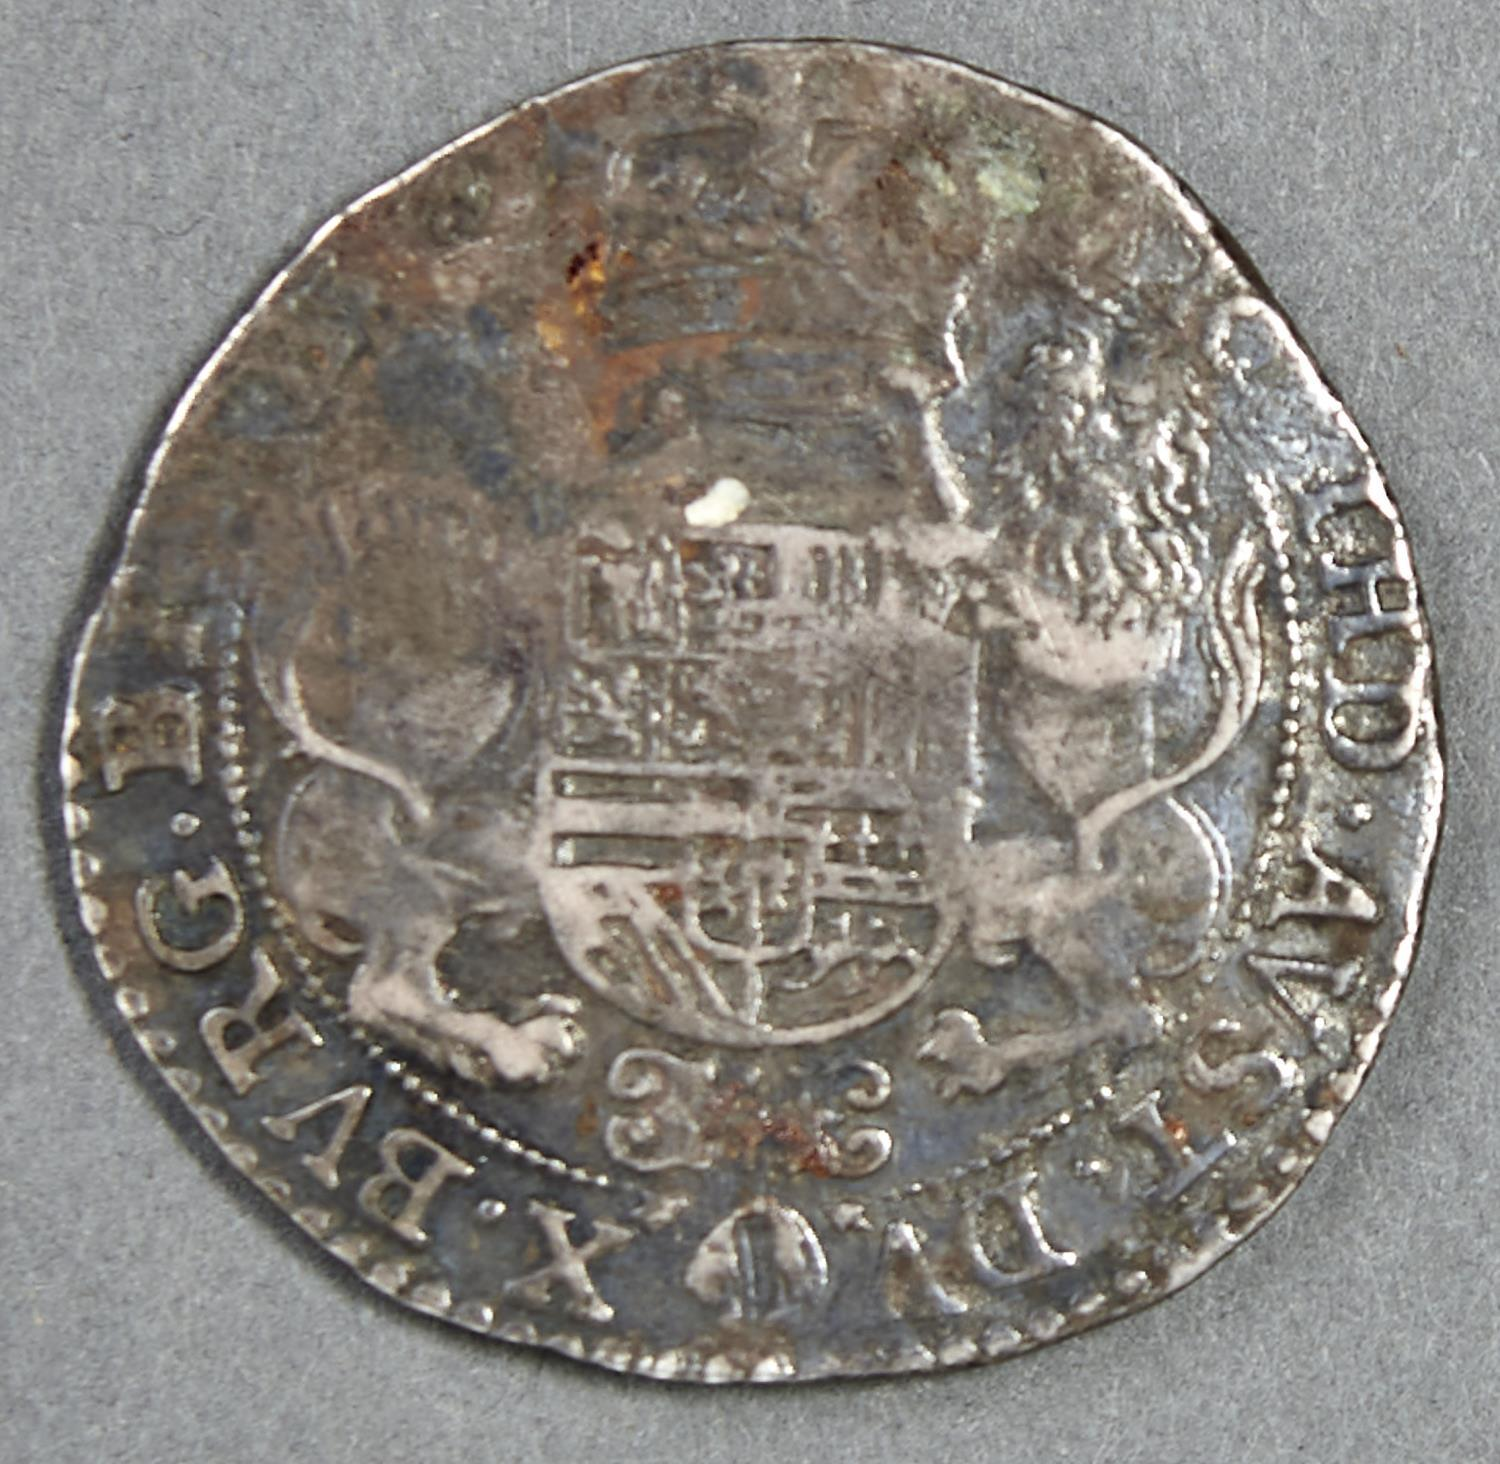 SPANISH NETHERLANDS, BRABANT, PHILIP IV, DUCATON, 1634, POSSIBLY A WRECK FIND, FINE+, WITH A BOLD - Image 2 of 2